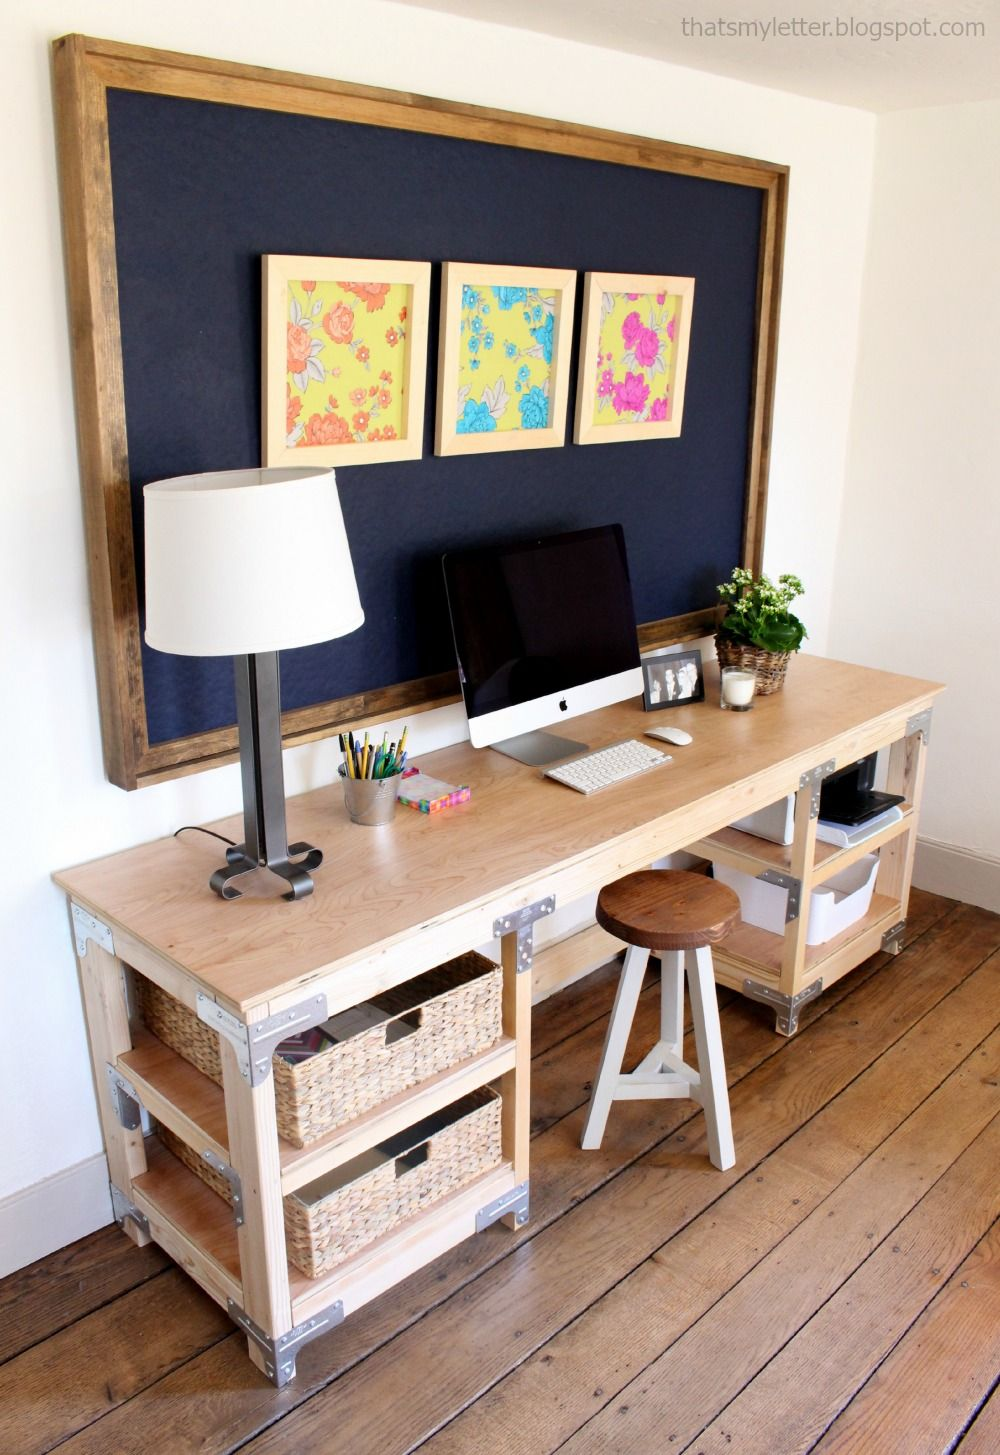 My dream desk that I WILL build this summer, 2015. Diy